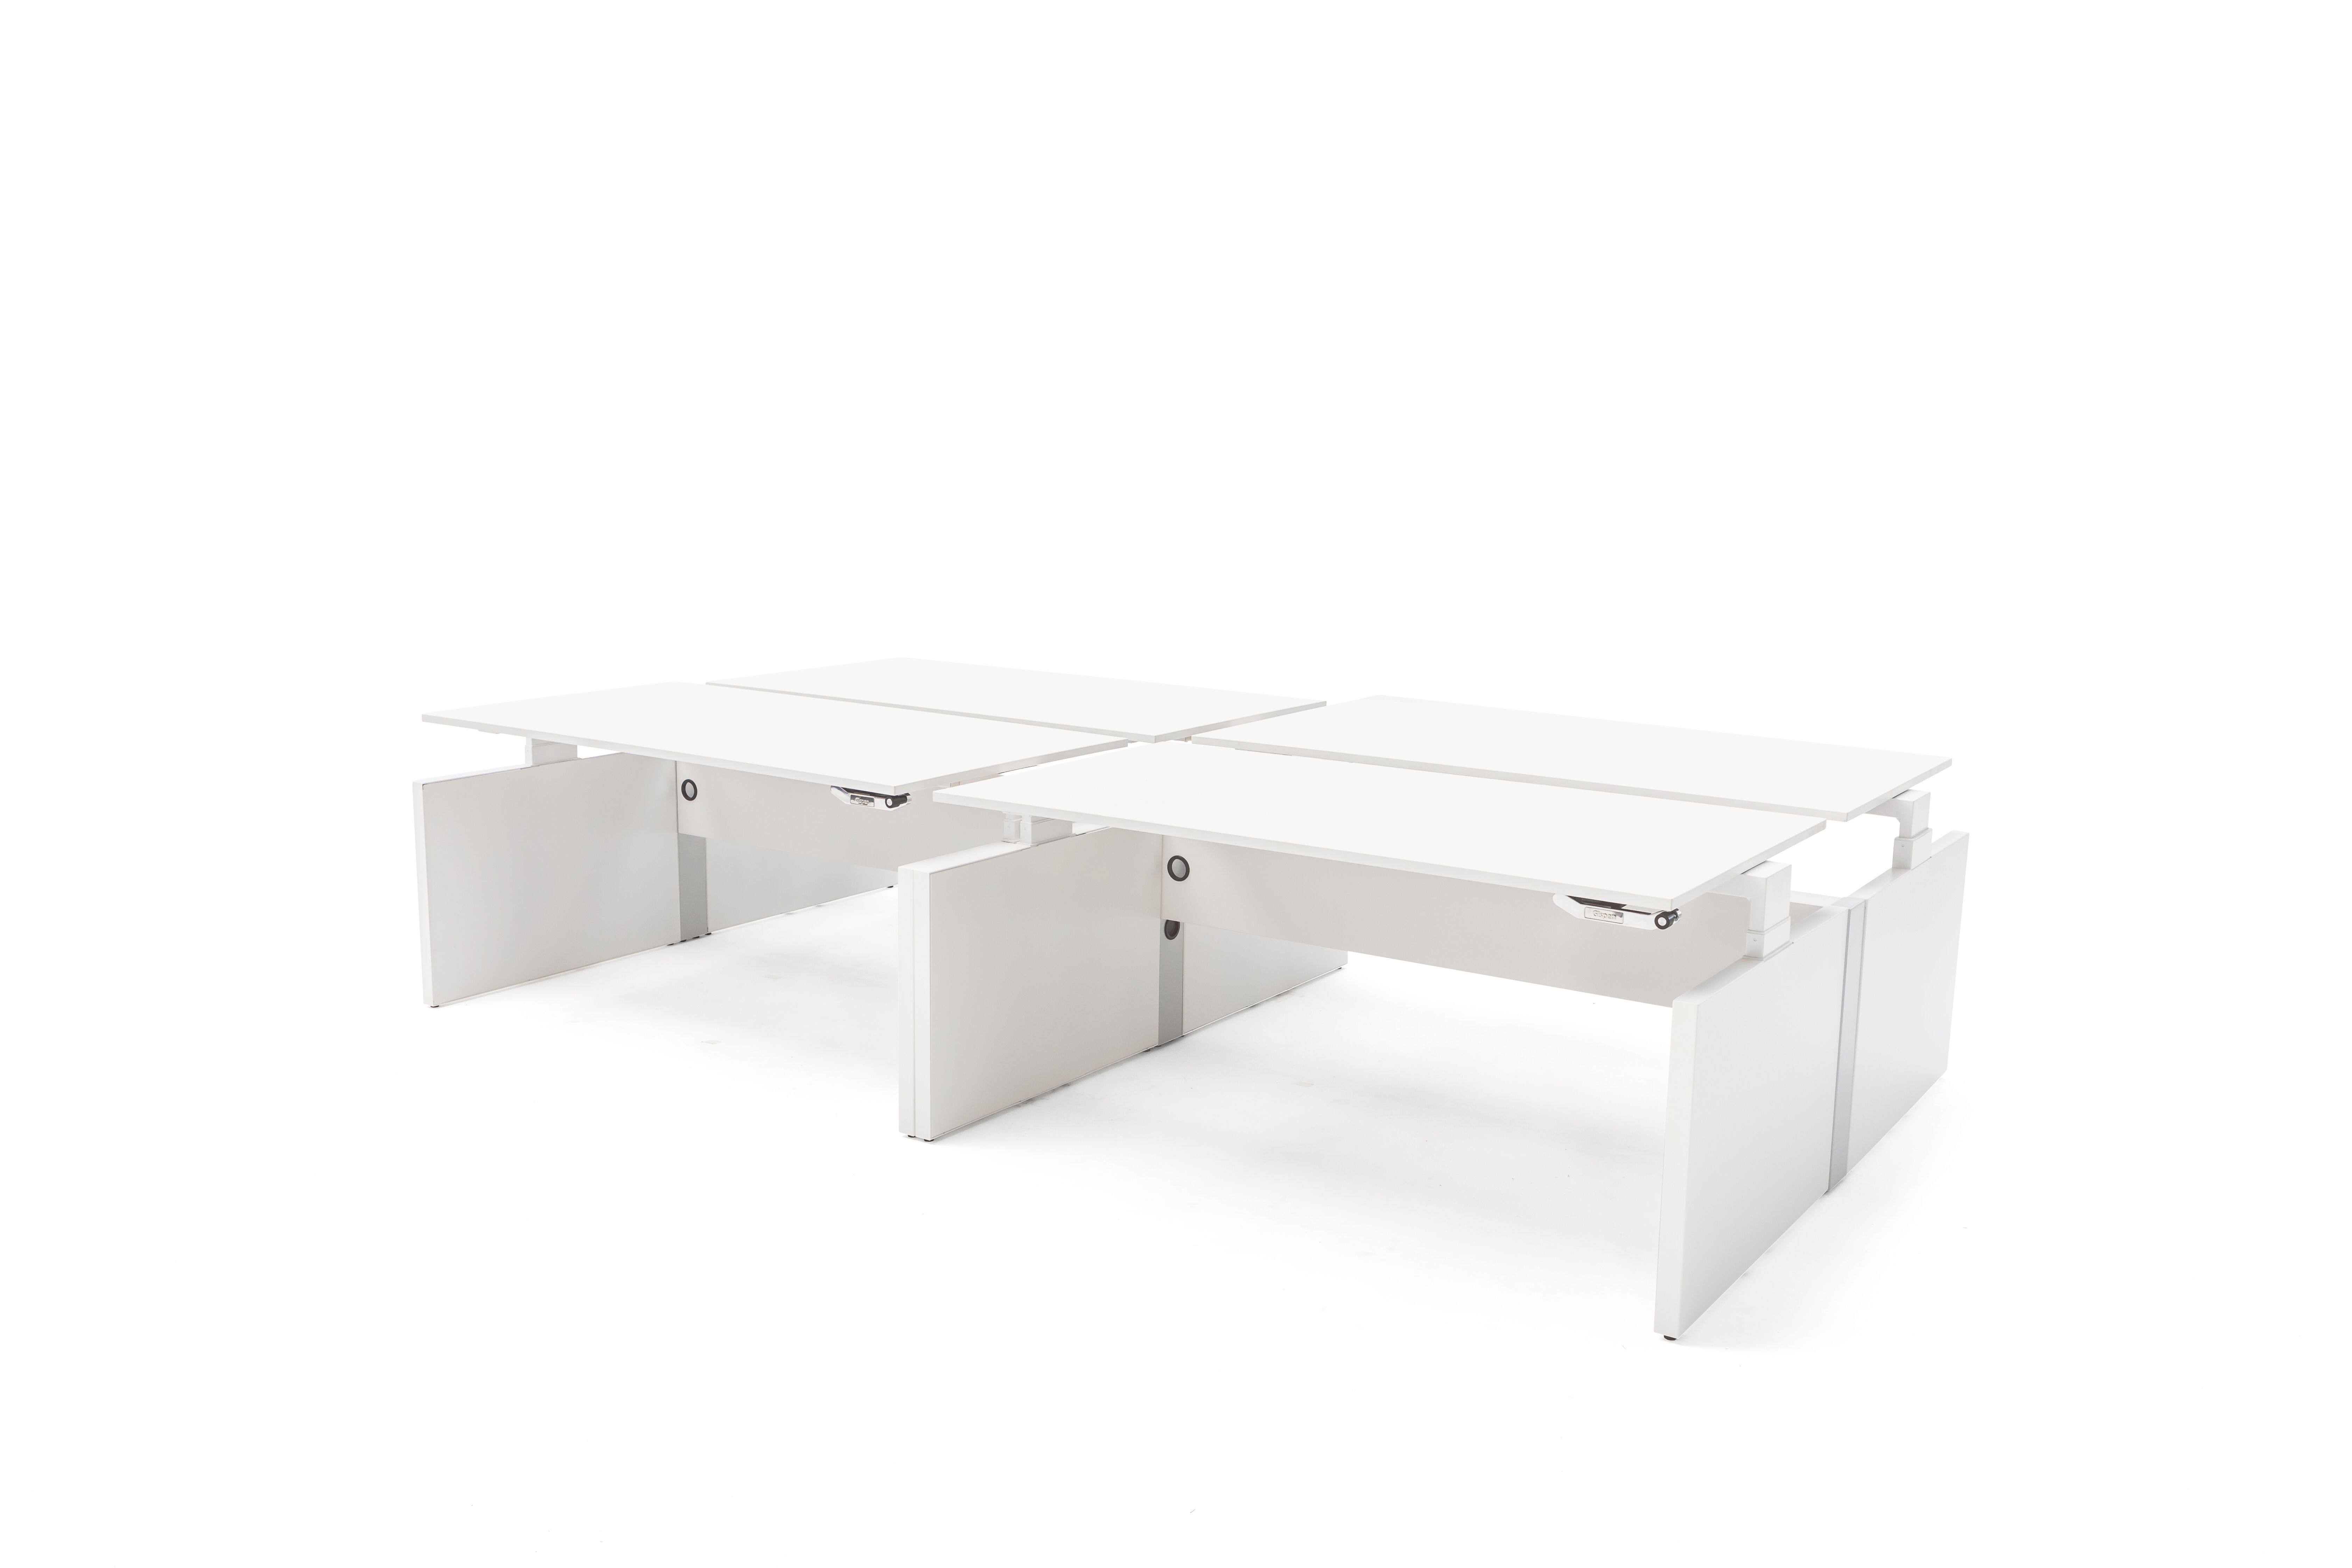 Gispen Cimo dual tables 4 pack with white frame and mono linkable panel legs with white chipboard tabletops front right view